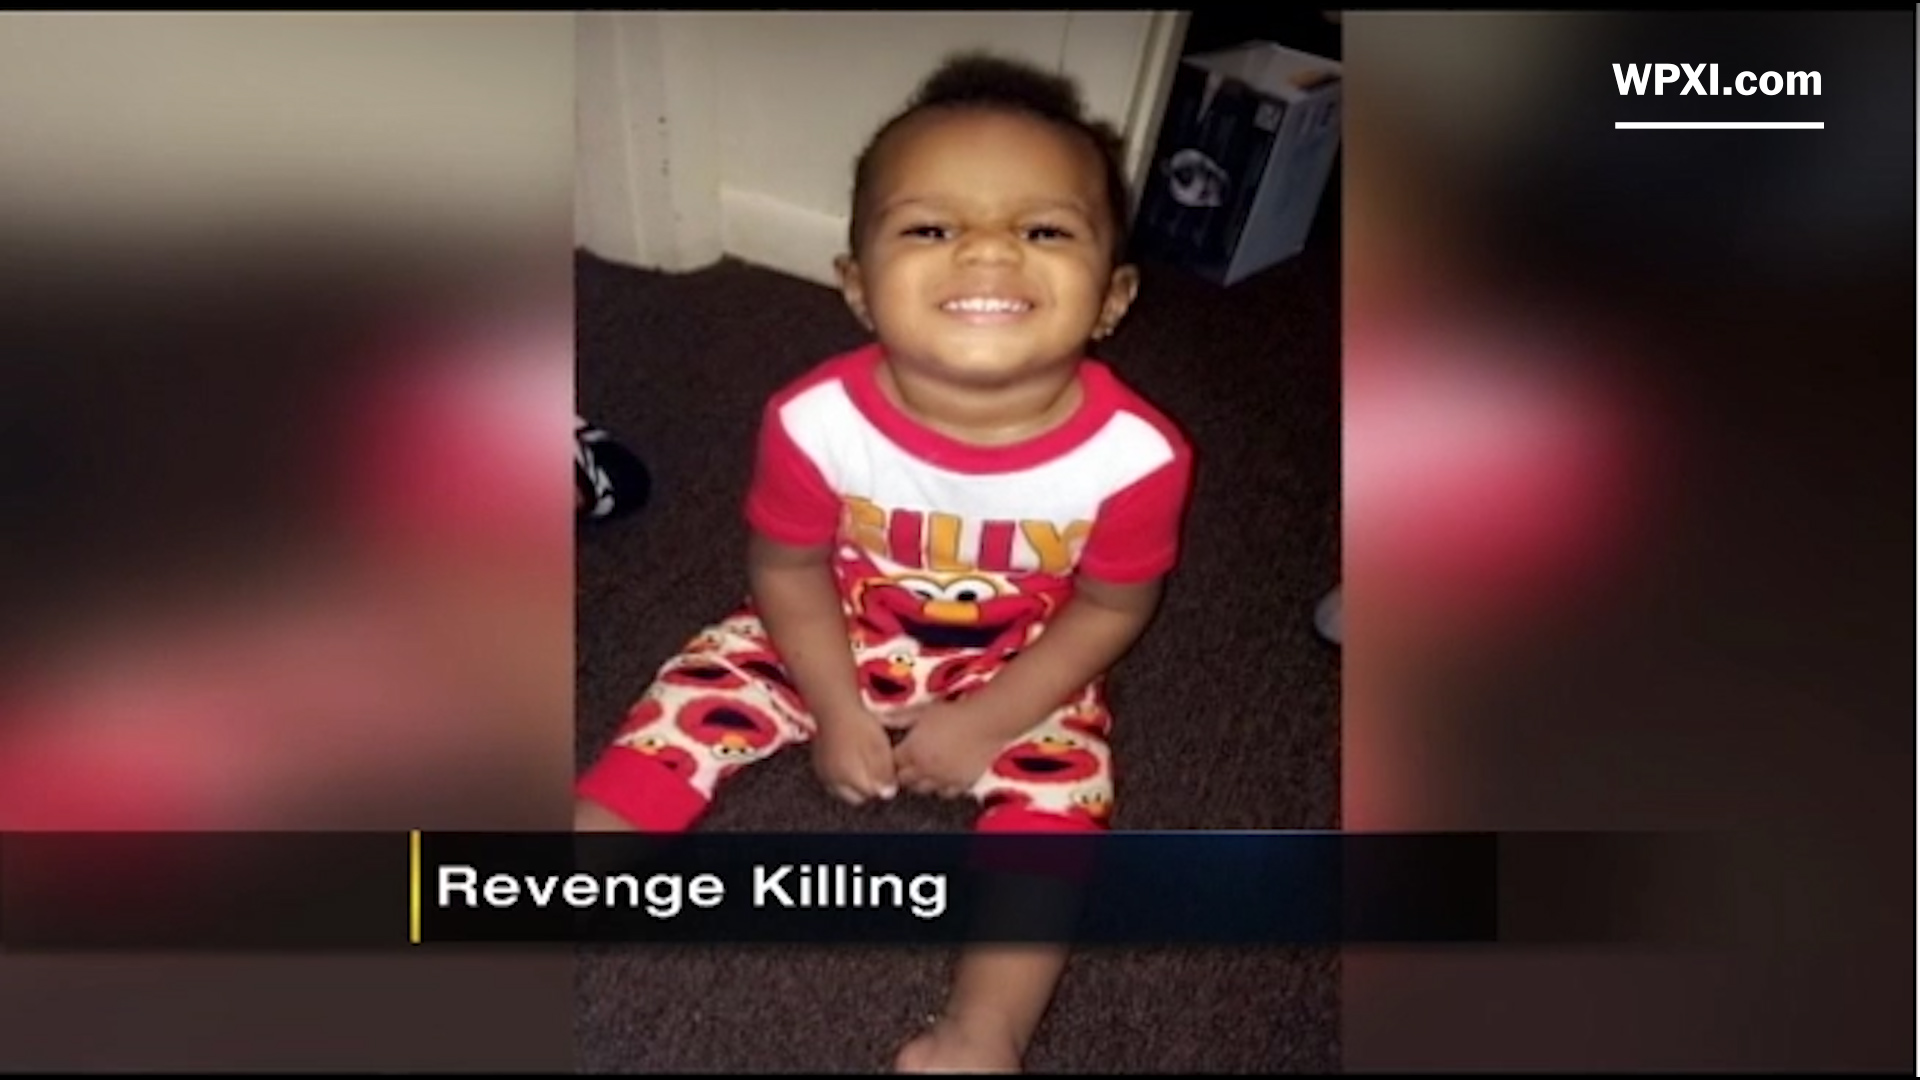 'I don't love them': She thought her boyfriend was cheating, so she killed their child, police say